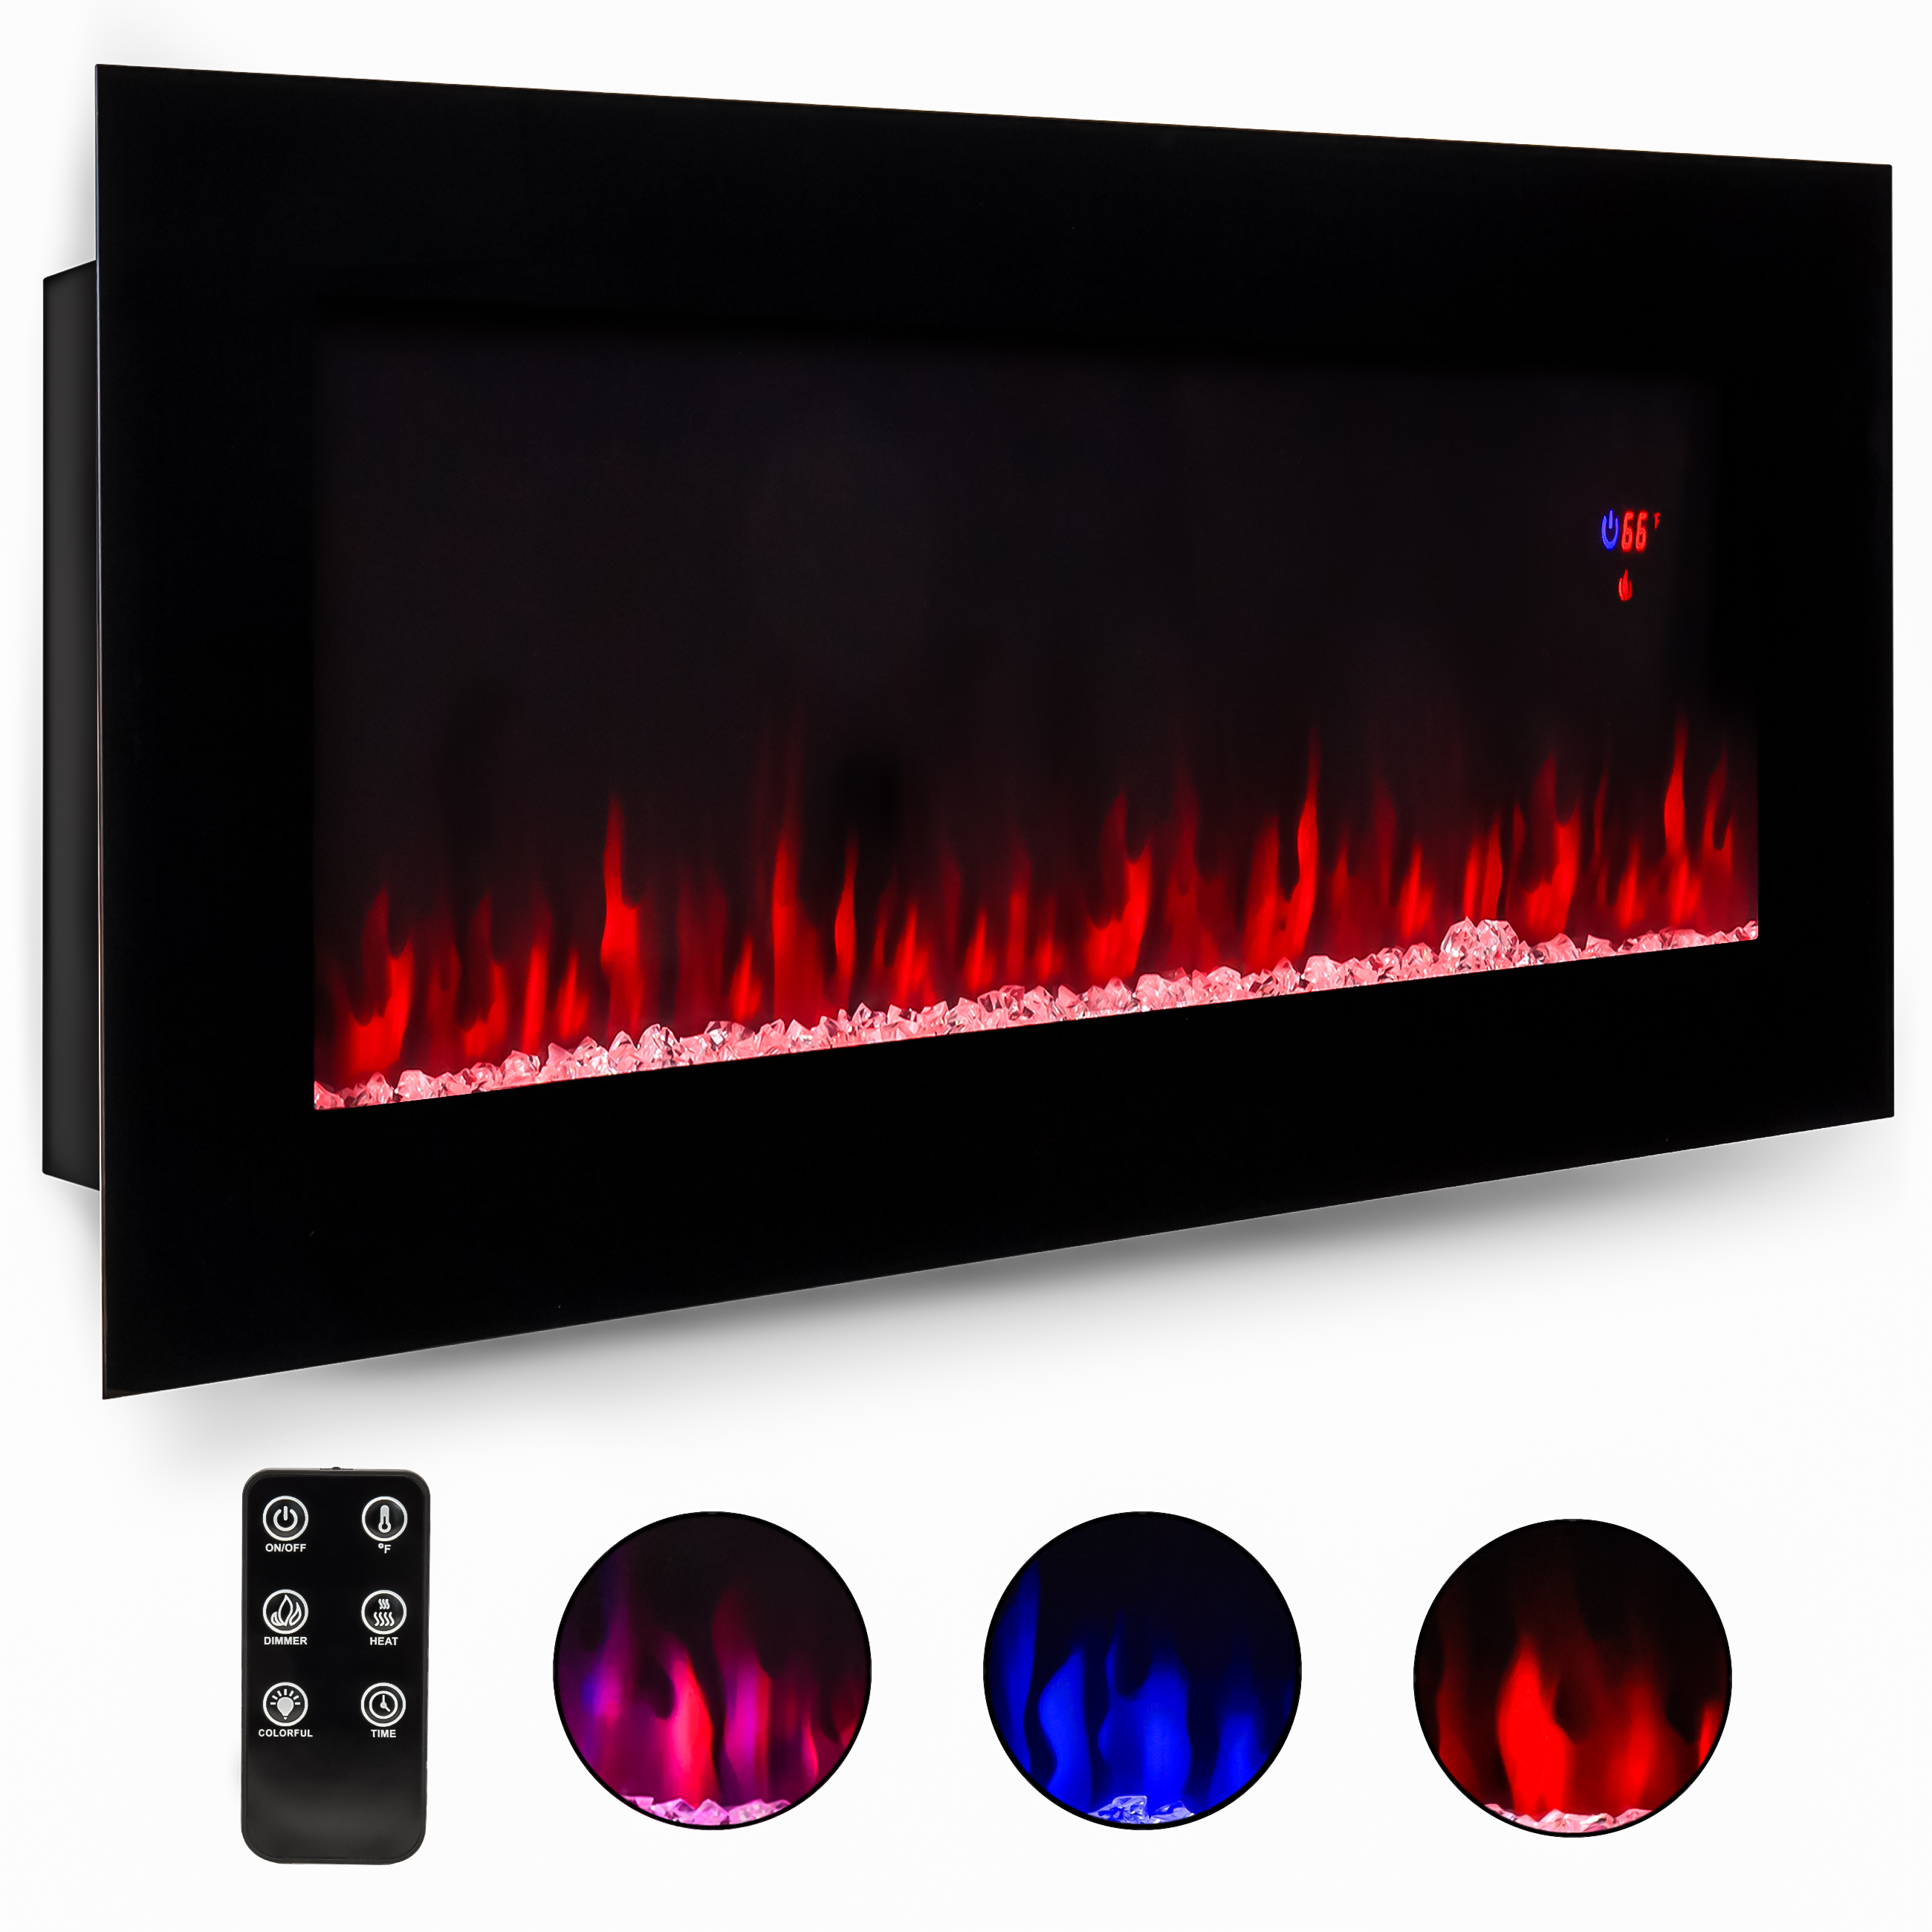 Best Choice Products 50in Electric Wall Mounted Smokeless Ventless Fireplace Heater w/ Remote Control - Black